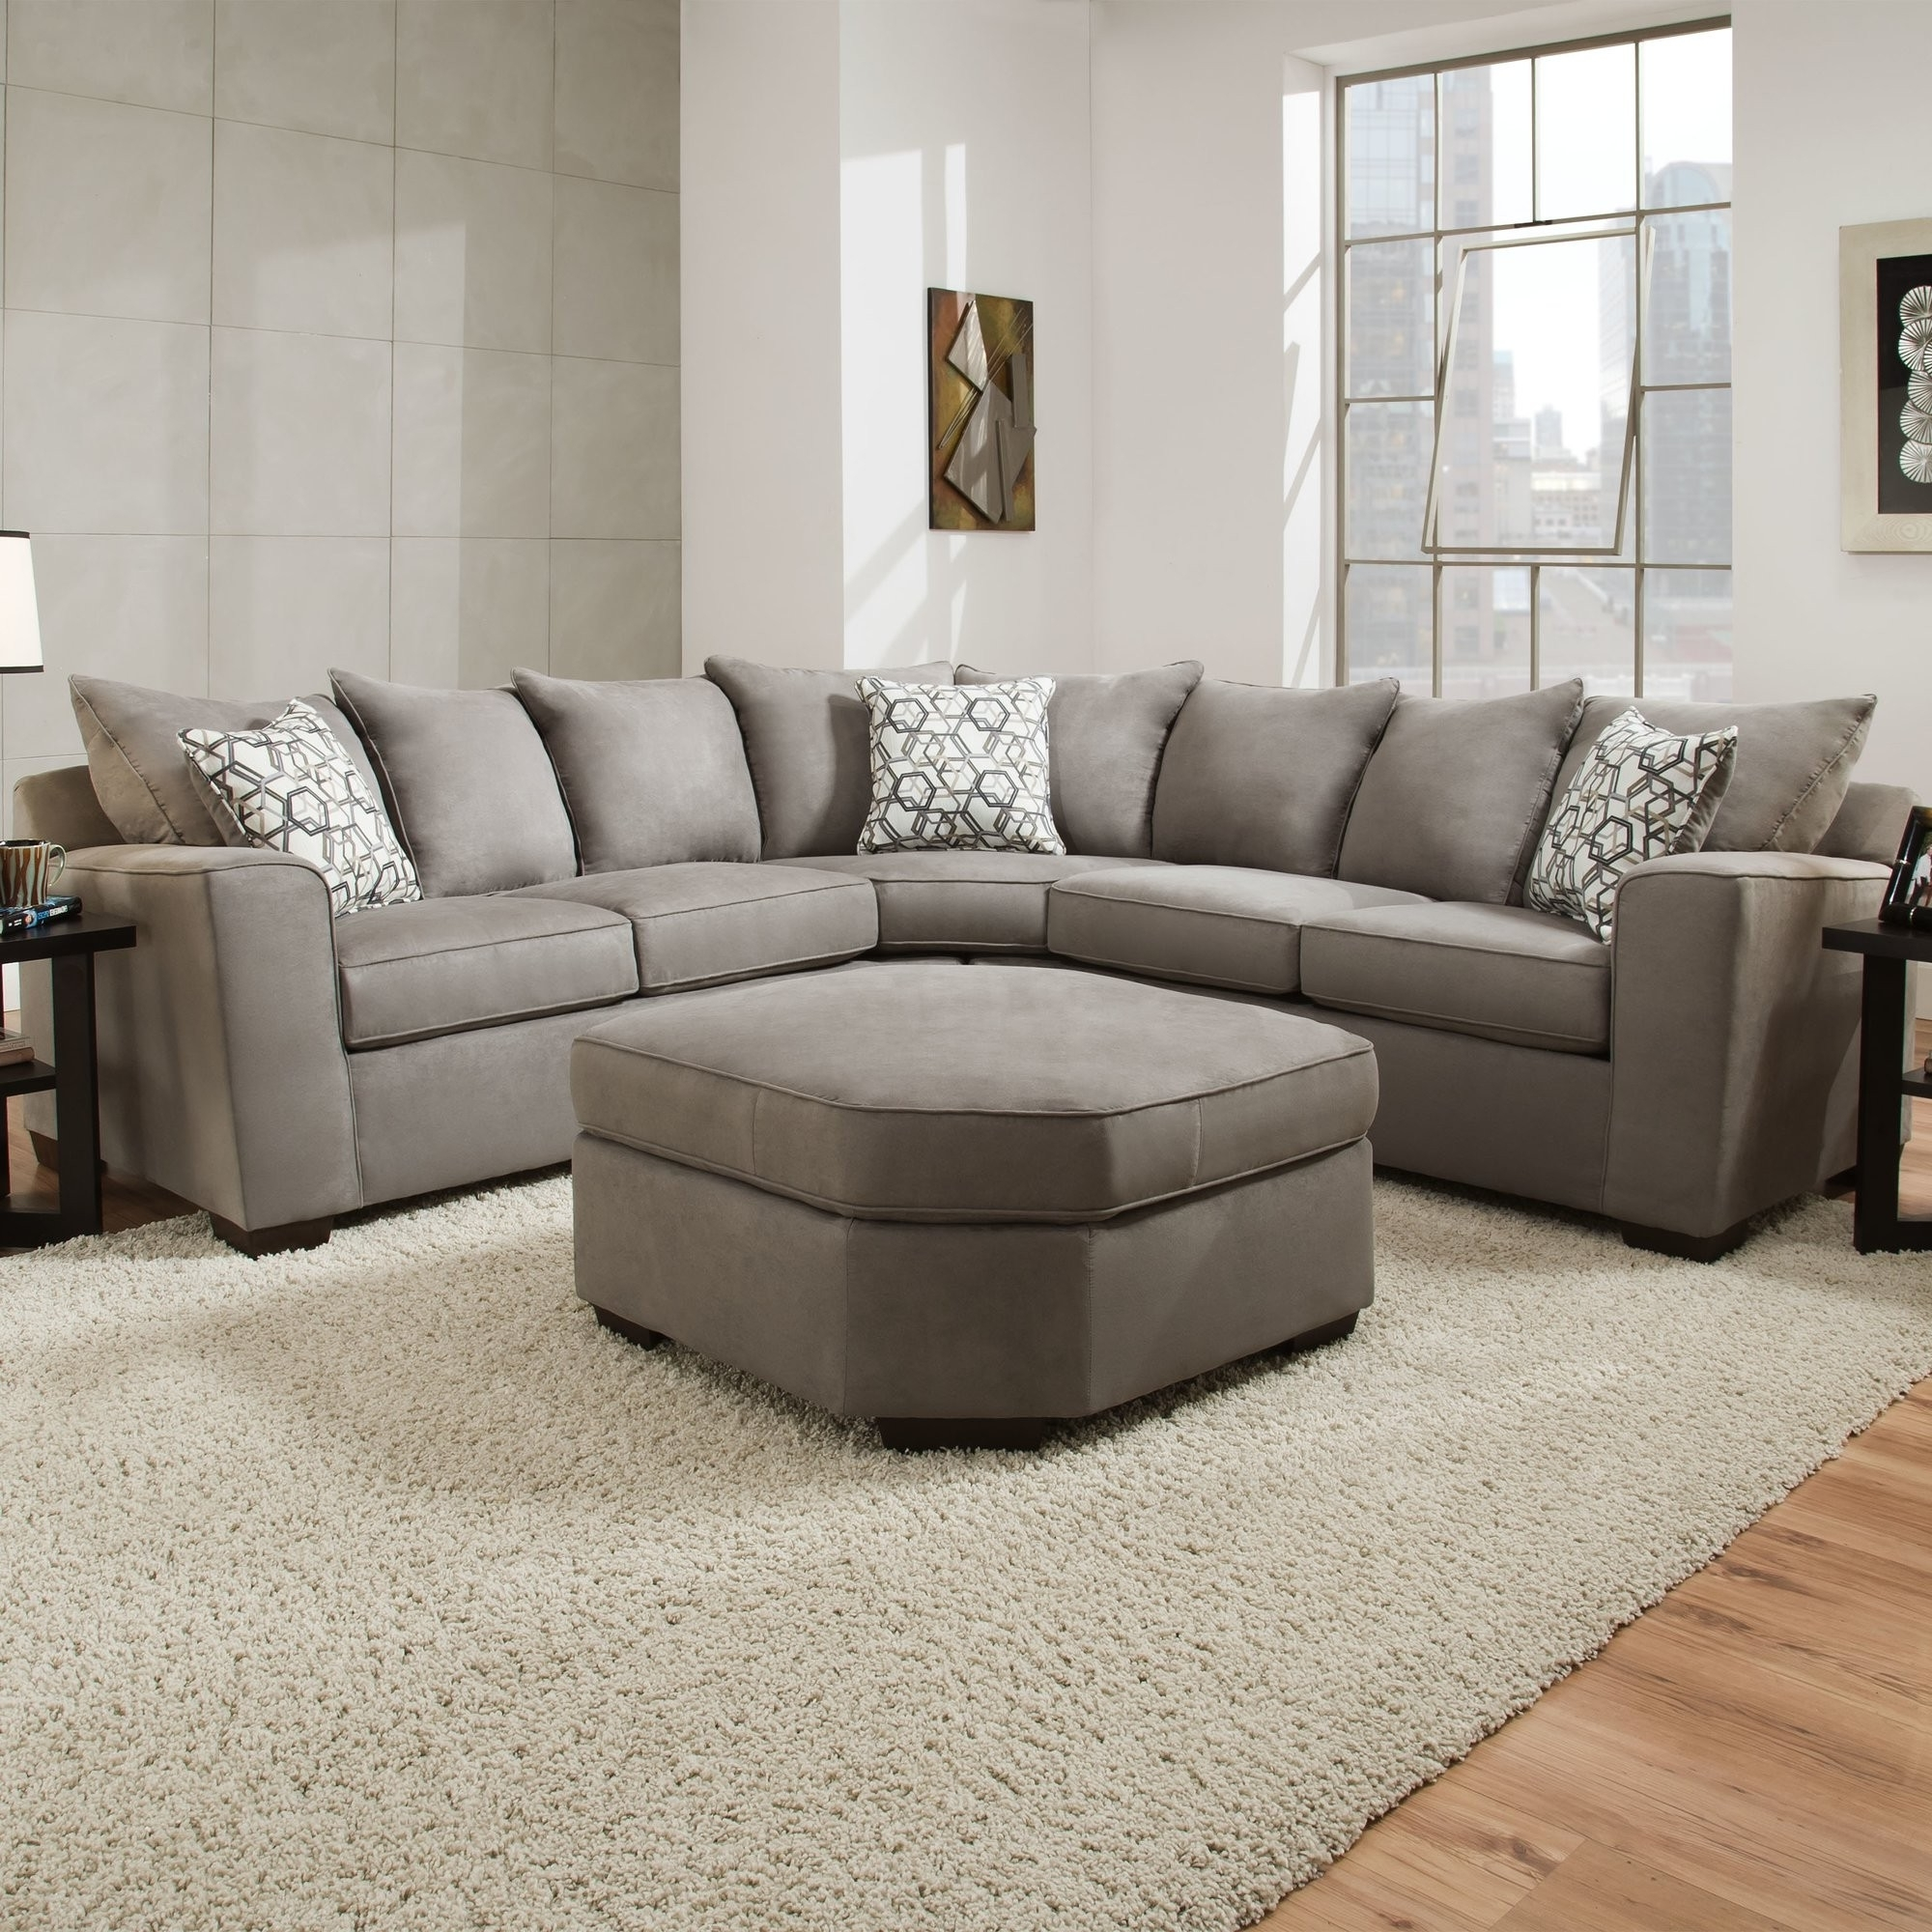 2018 Joss And Main Sectional Sofas Inside Fresh Simmons Sectional Sofa Joss And Main – Buildsimplehome (View 1 of 15)